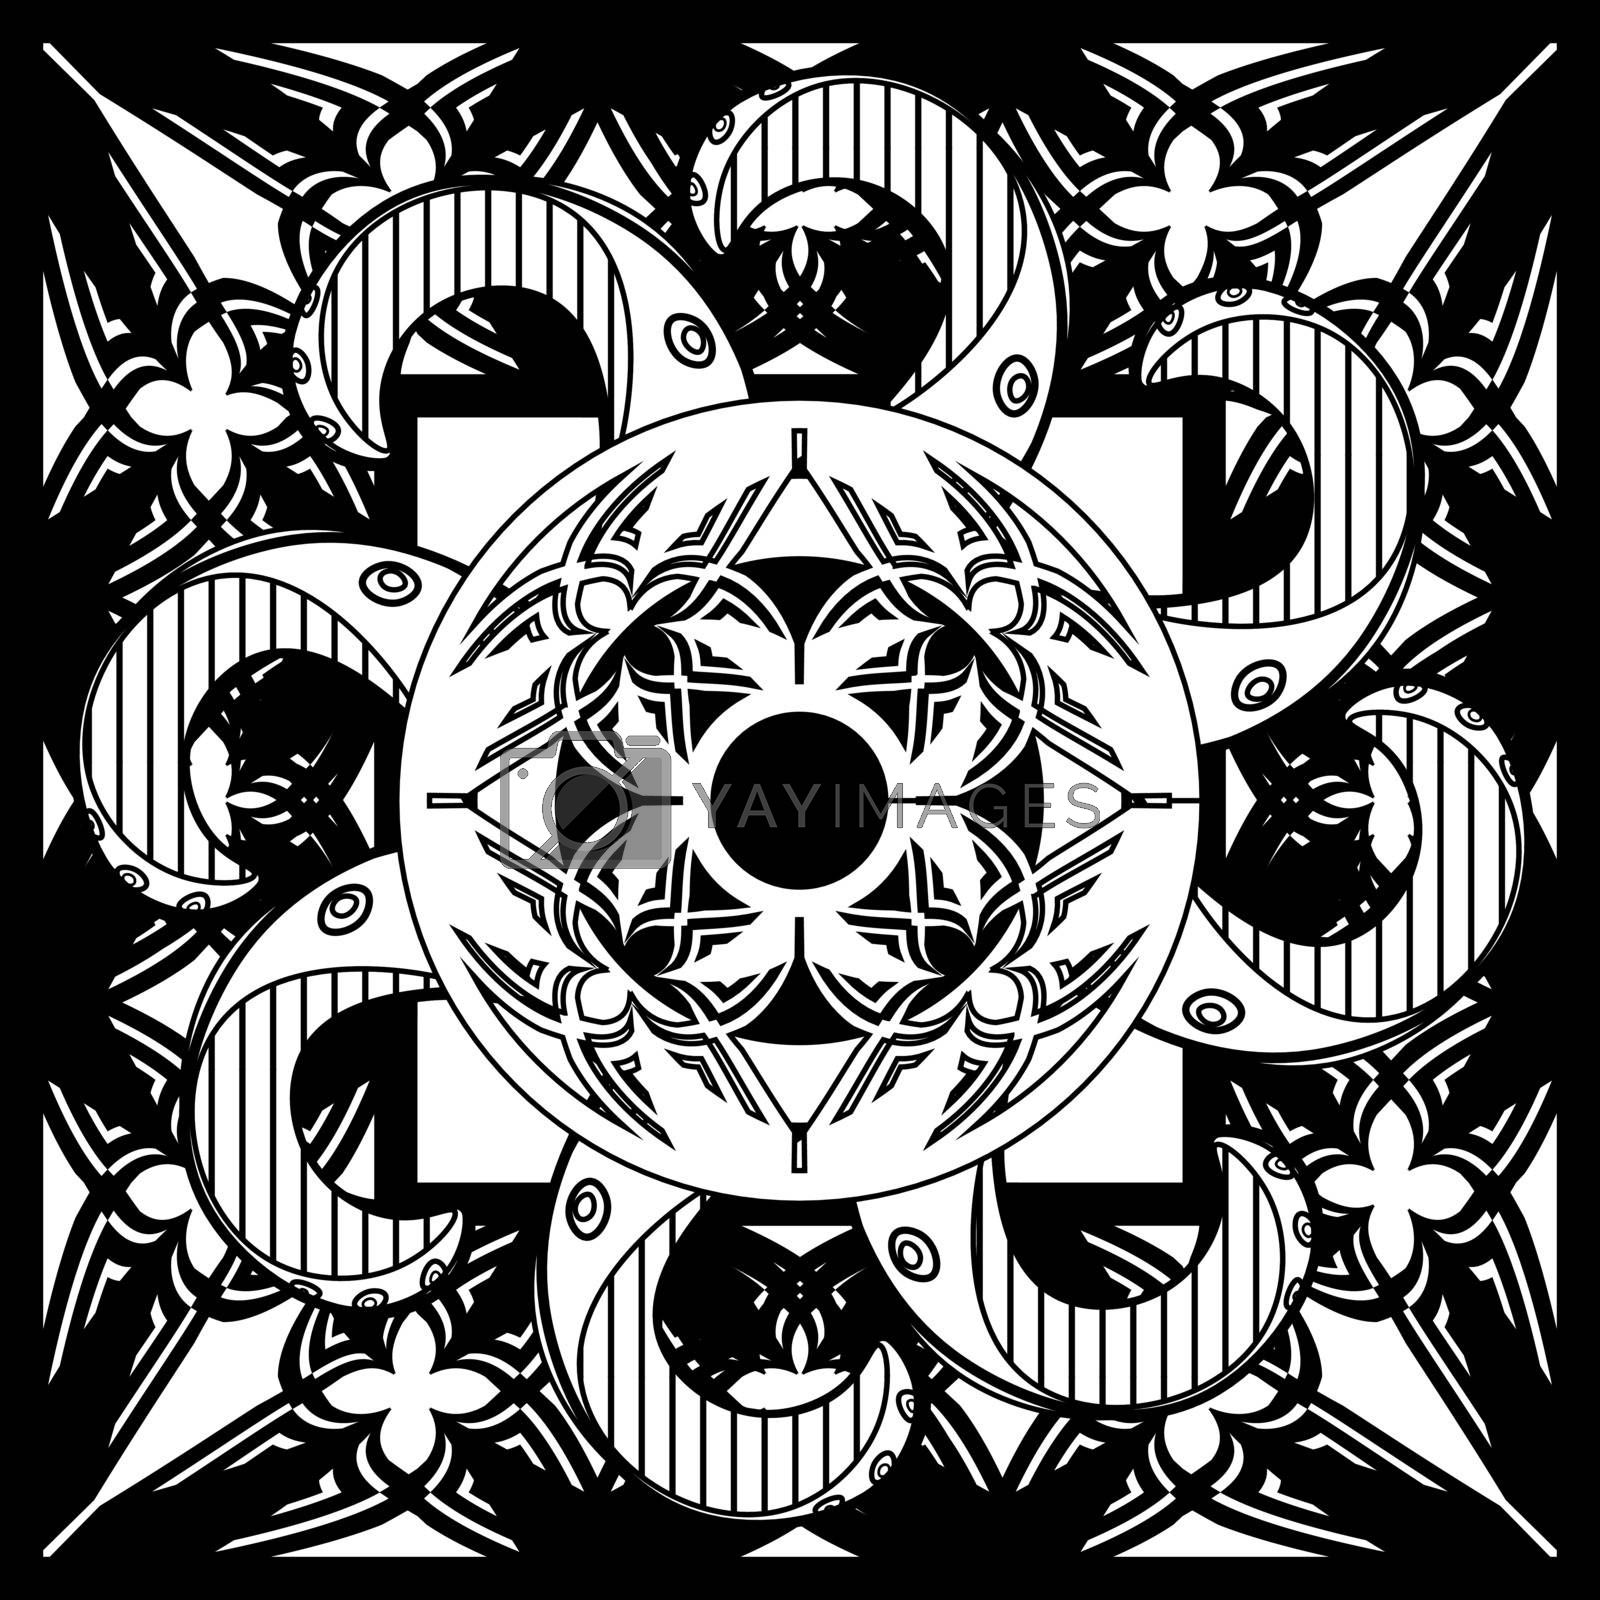 Abstract black and white motif with gothic tracery and octopus tentacles